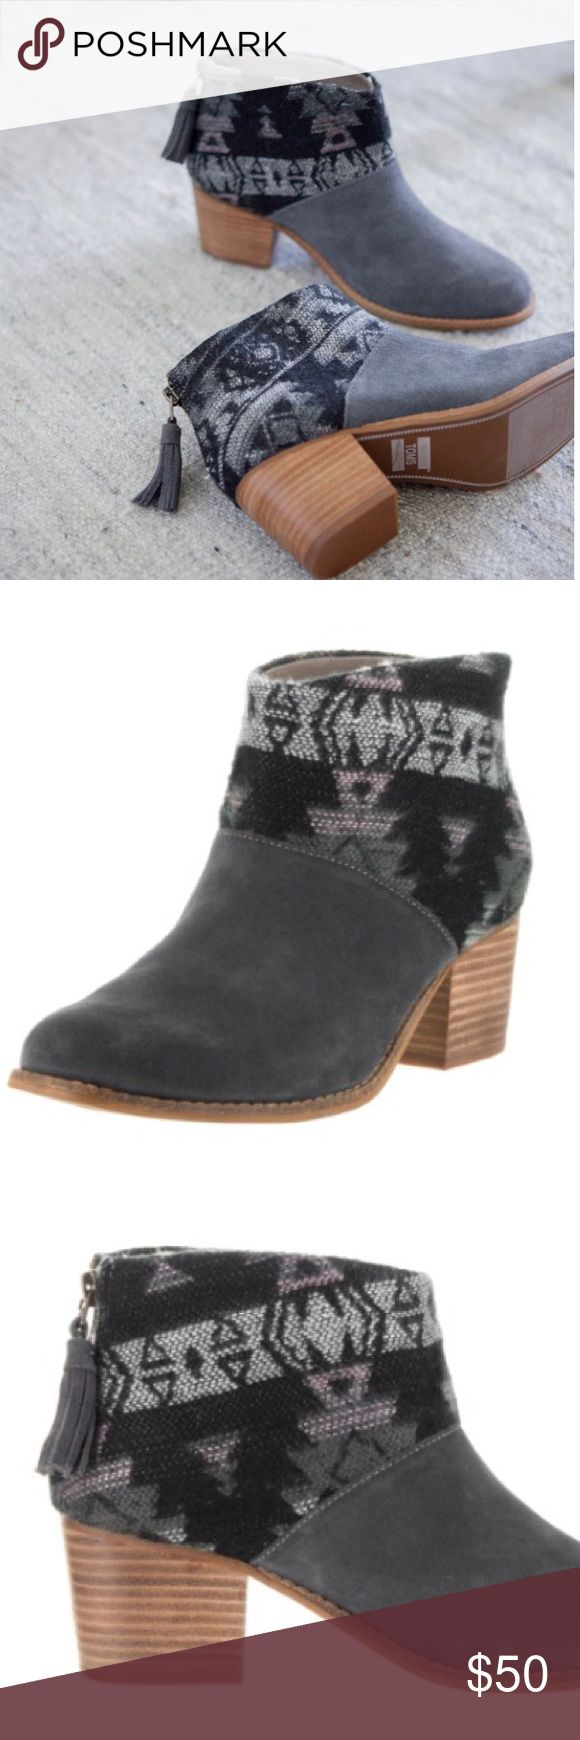 • Toms • Lelia Tribal Print Ankle Booties Gray - Toms - Lelia Ankle Heel Booties - Forged Iron Gray / Tribal Wool - Black / Gray - 7.5  - New without Box Toms Shoes Ankle Boots & Booties